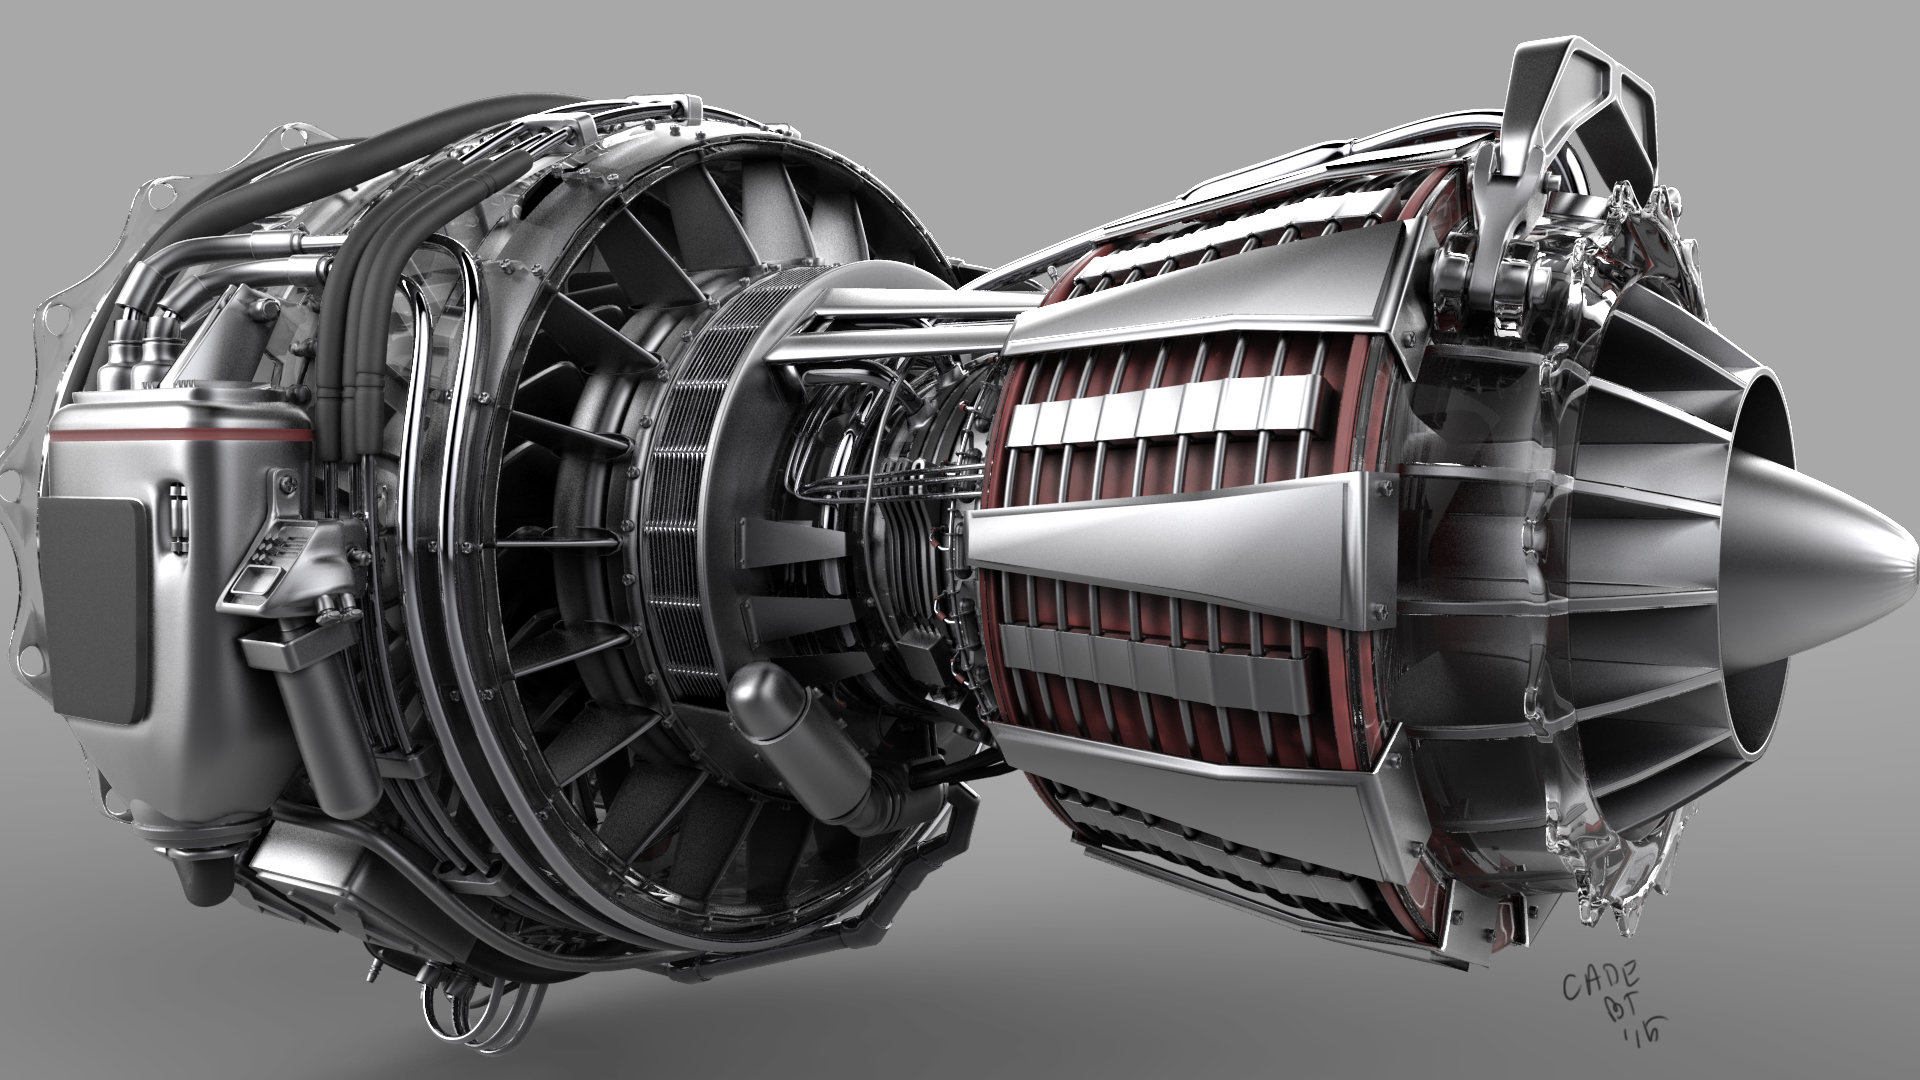 ArtStation Turbo Fan Jet Engine Cade Jacobs